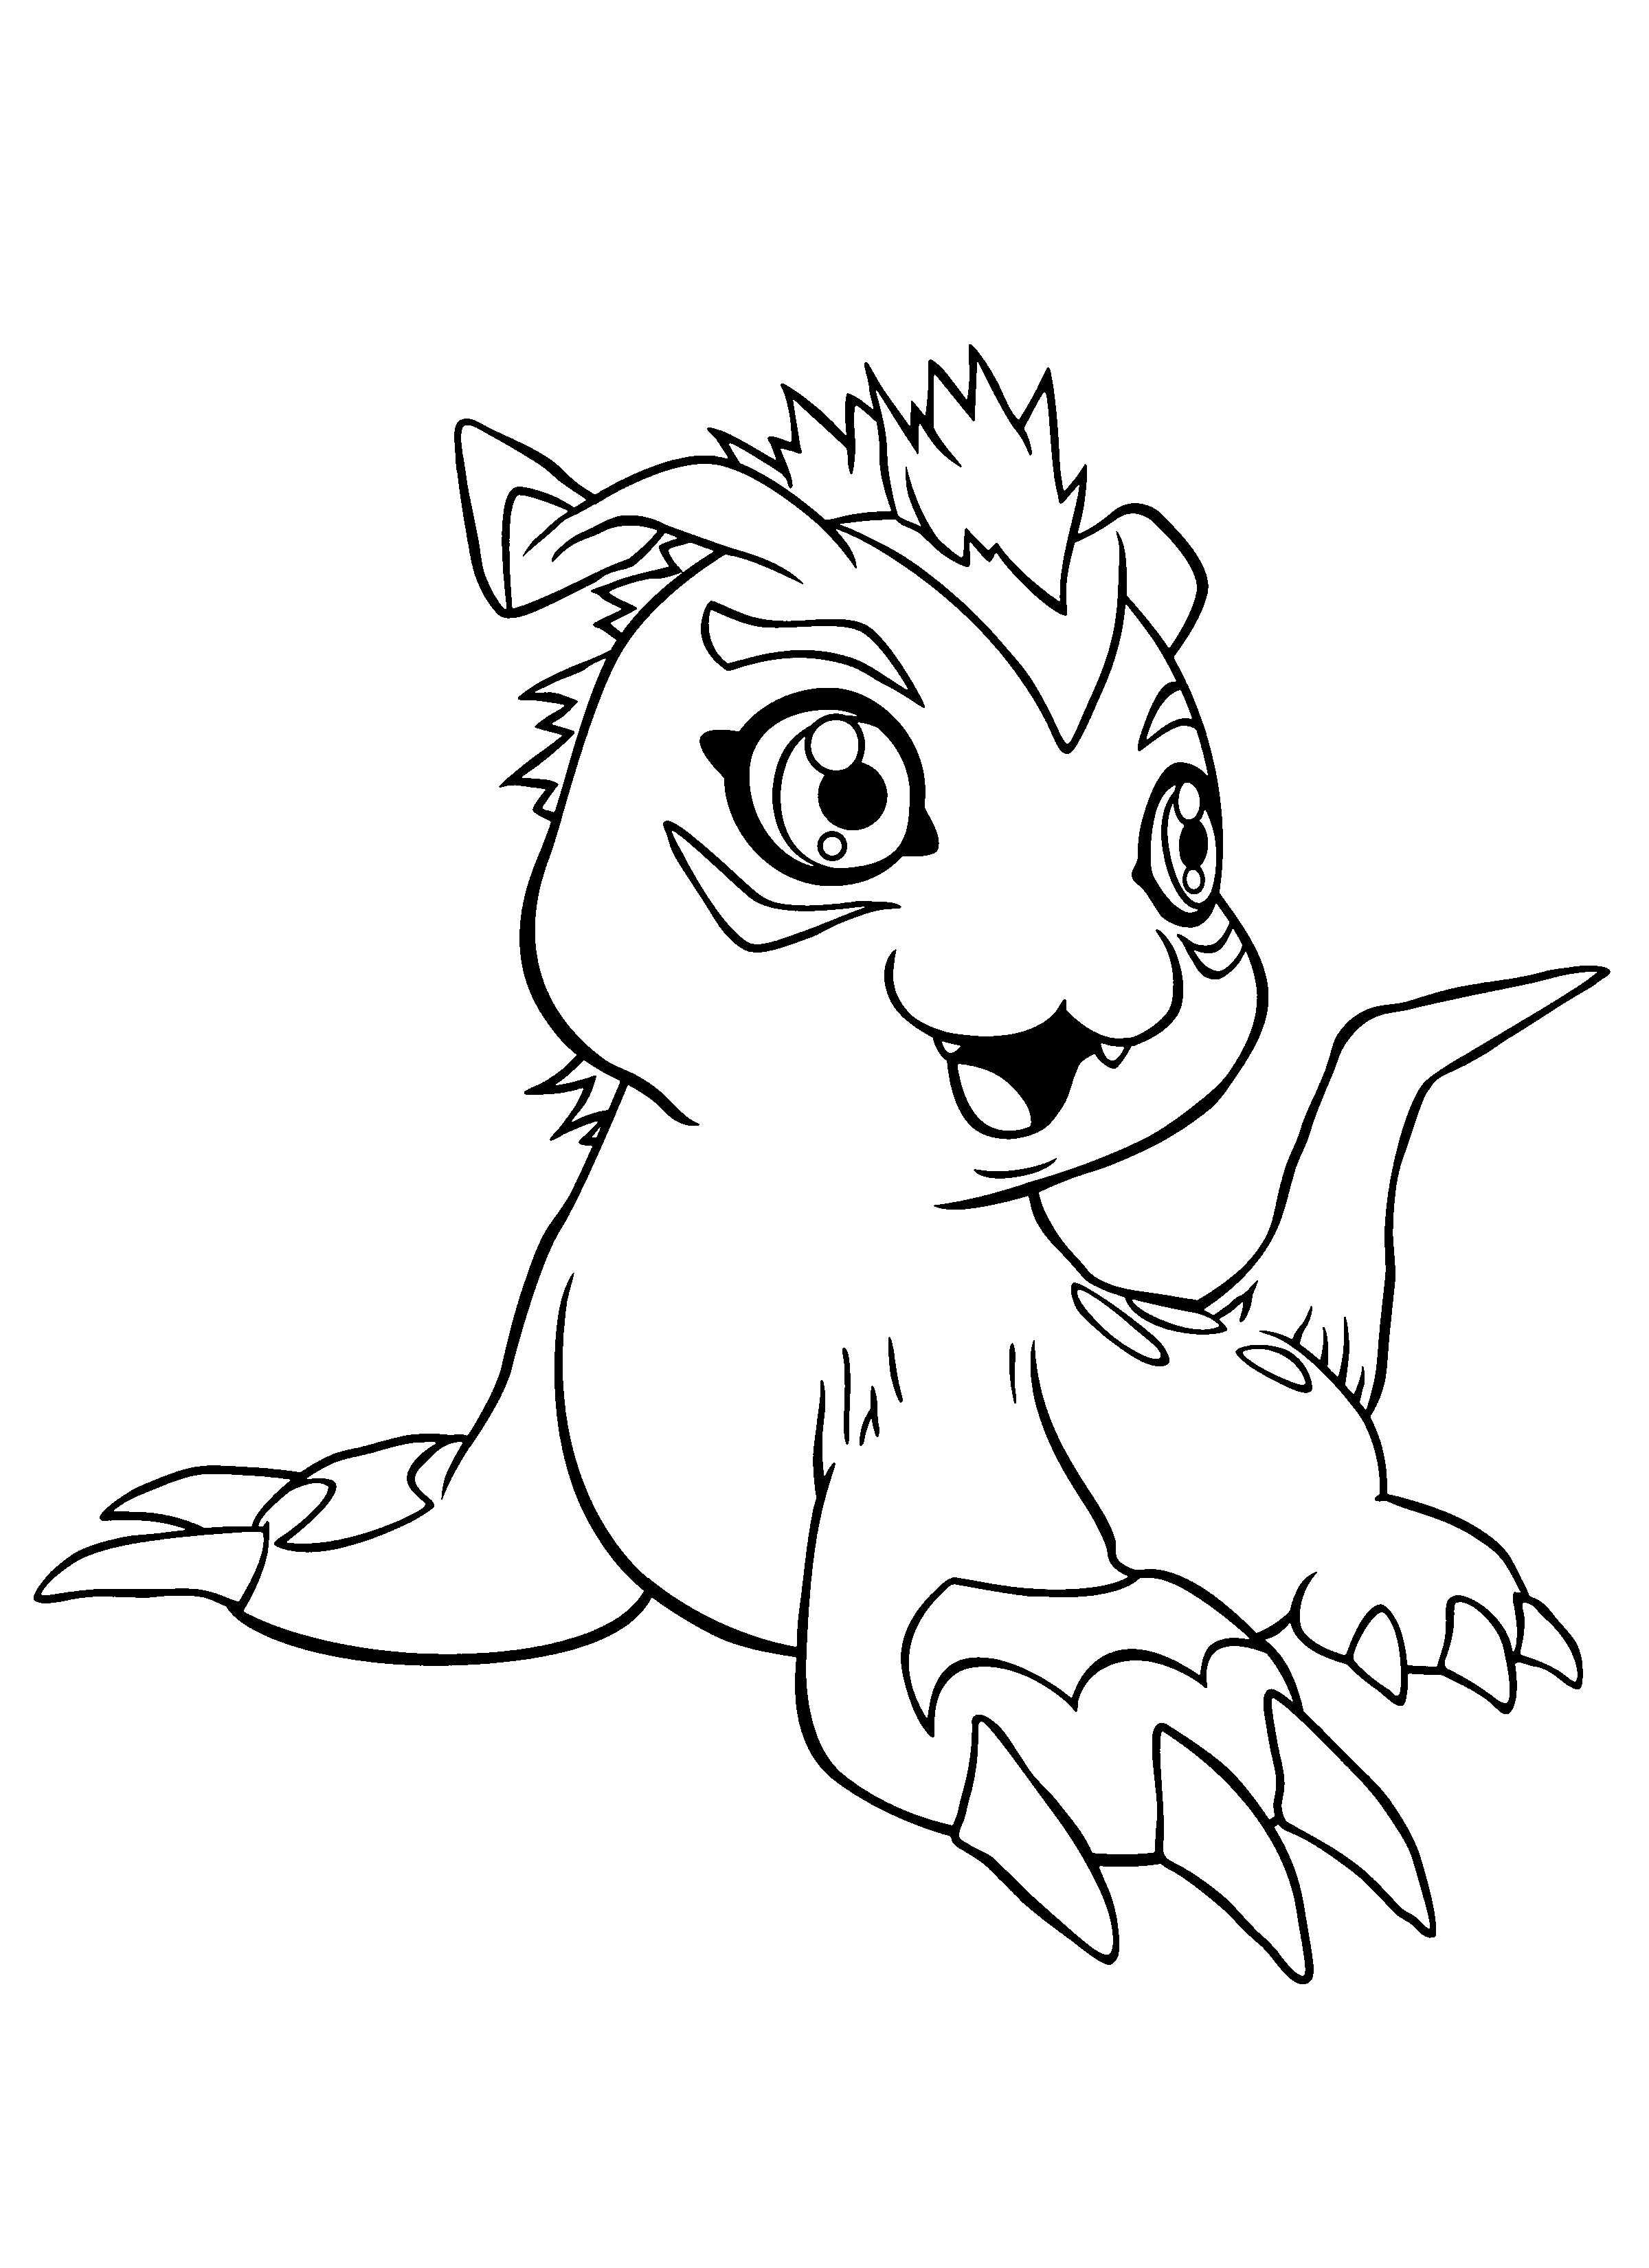 digimon coloring pages coloringpages1001